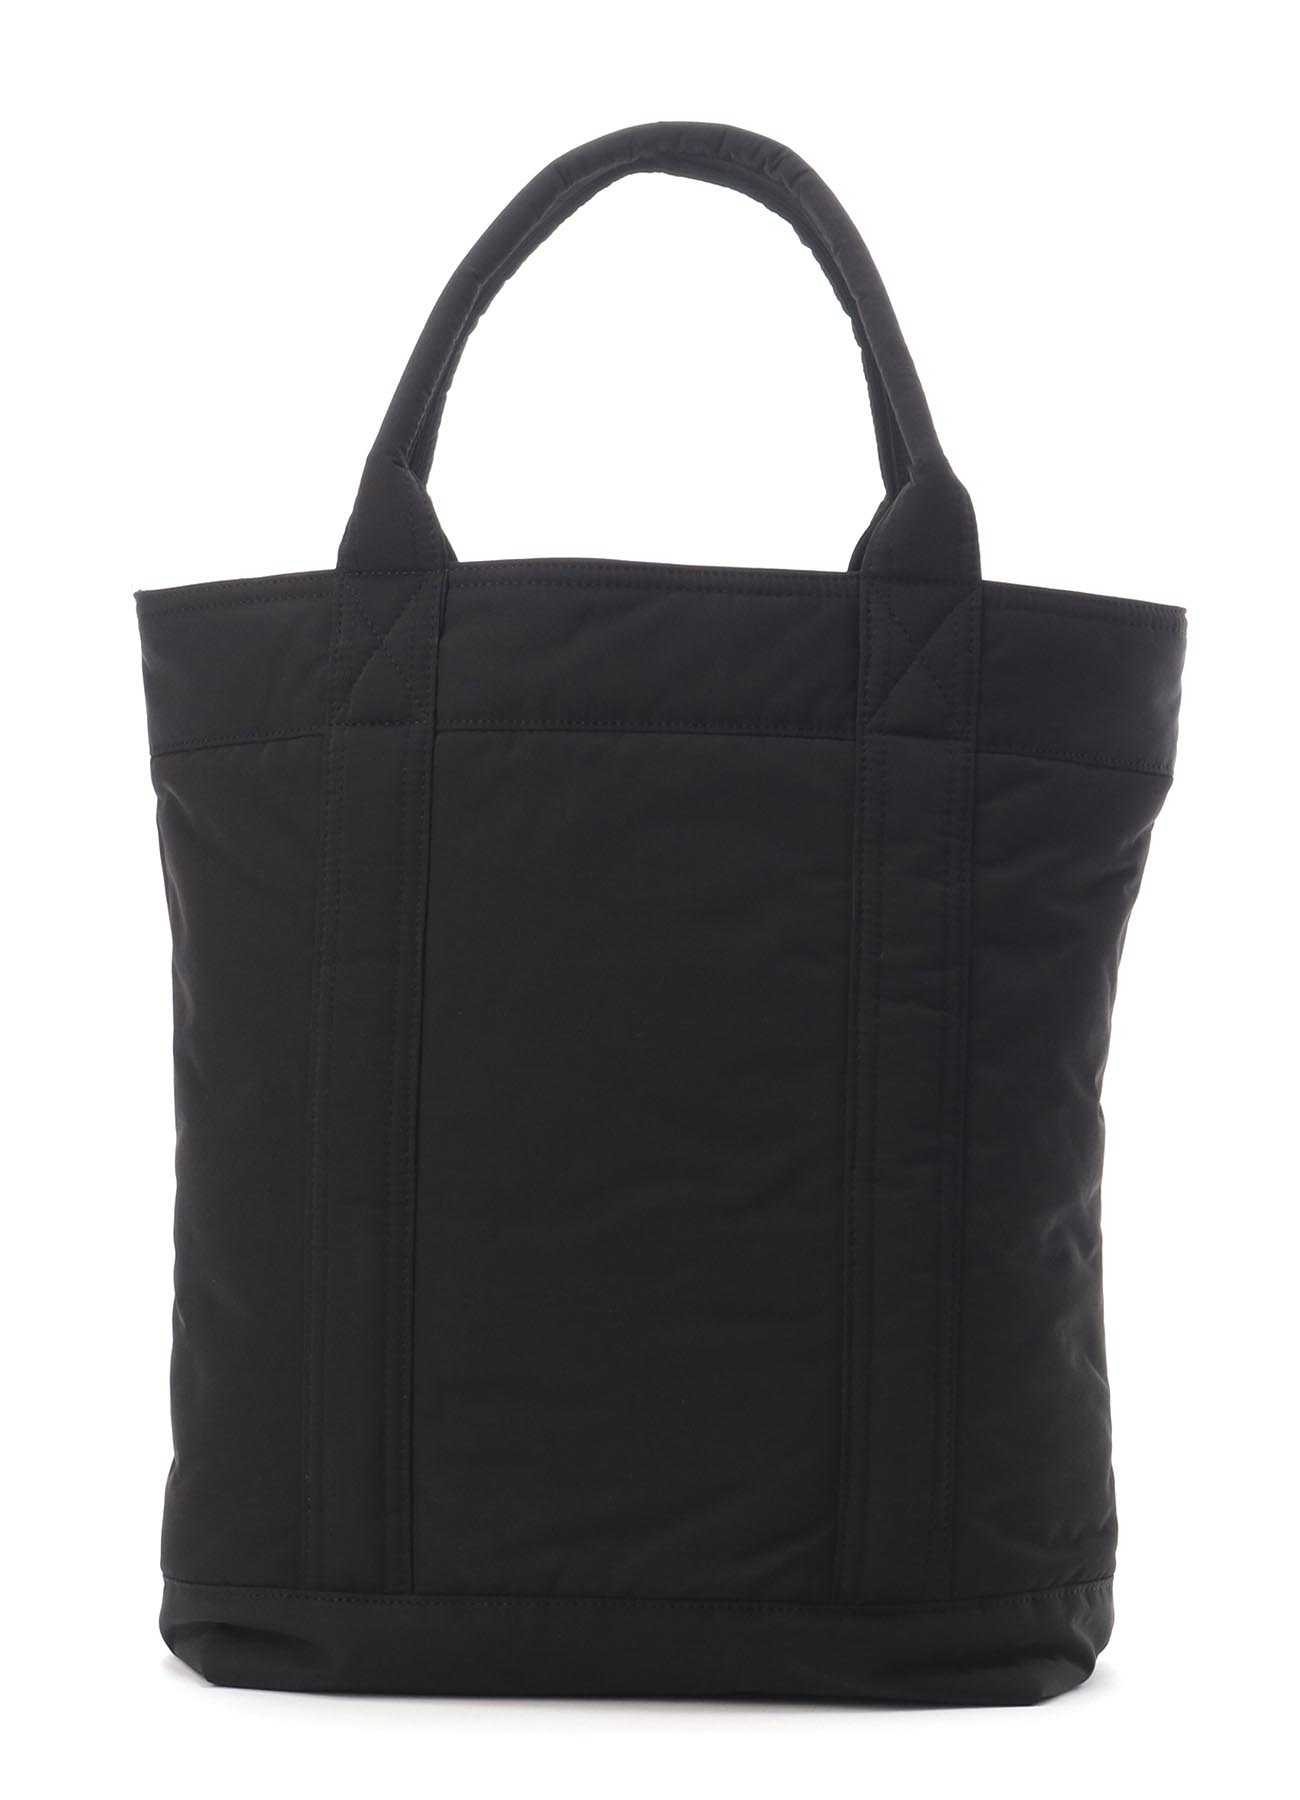 PY MEMORY WEATHER INSULATED PURSE STYLE TOTE BAG